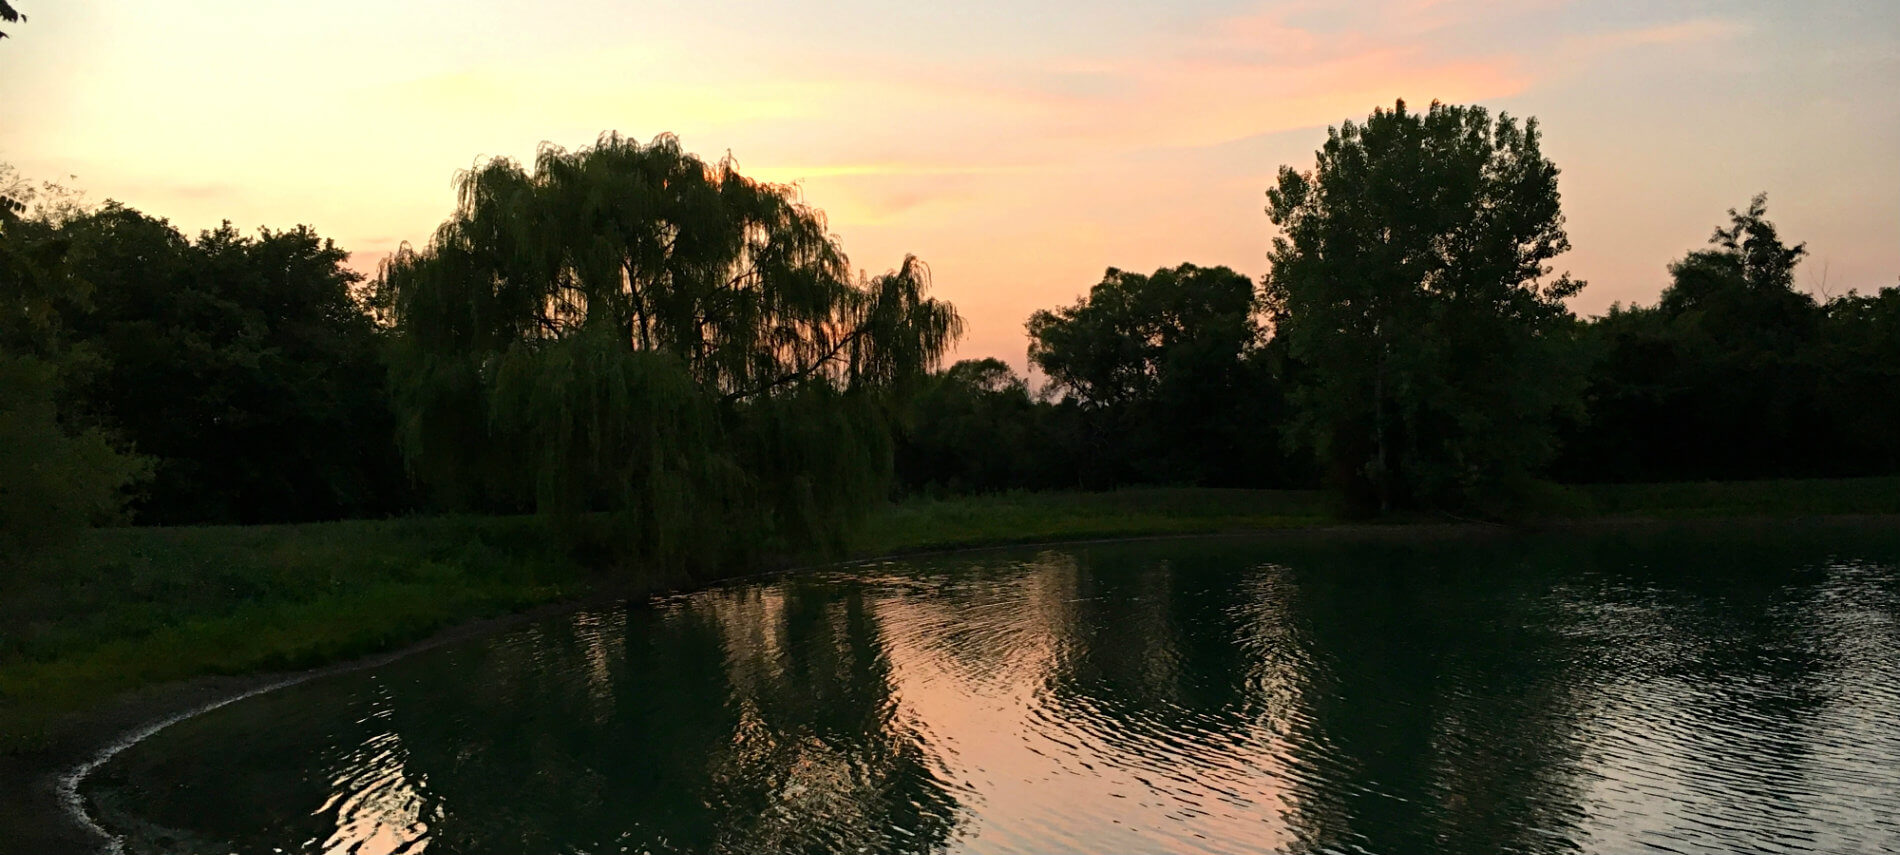 The calm pond surrounded by green lawn and trees at sunset with pink and yellow tinted sky